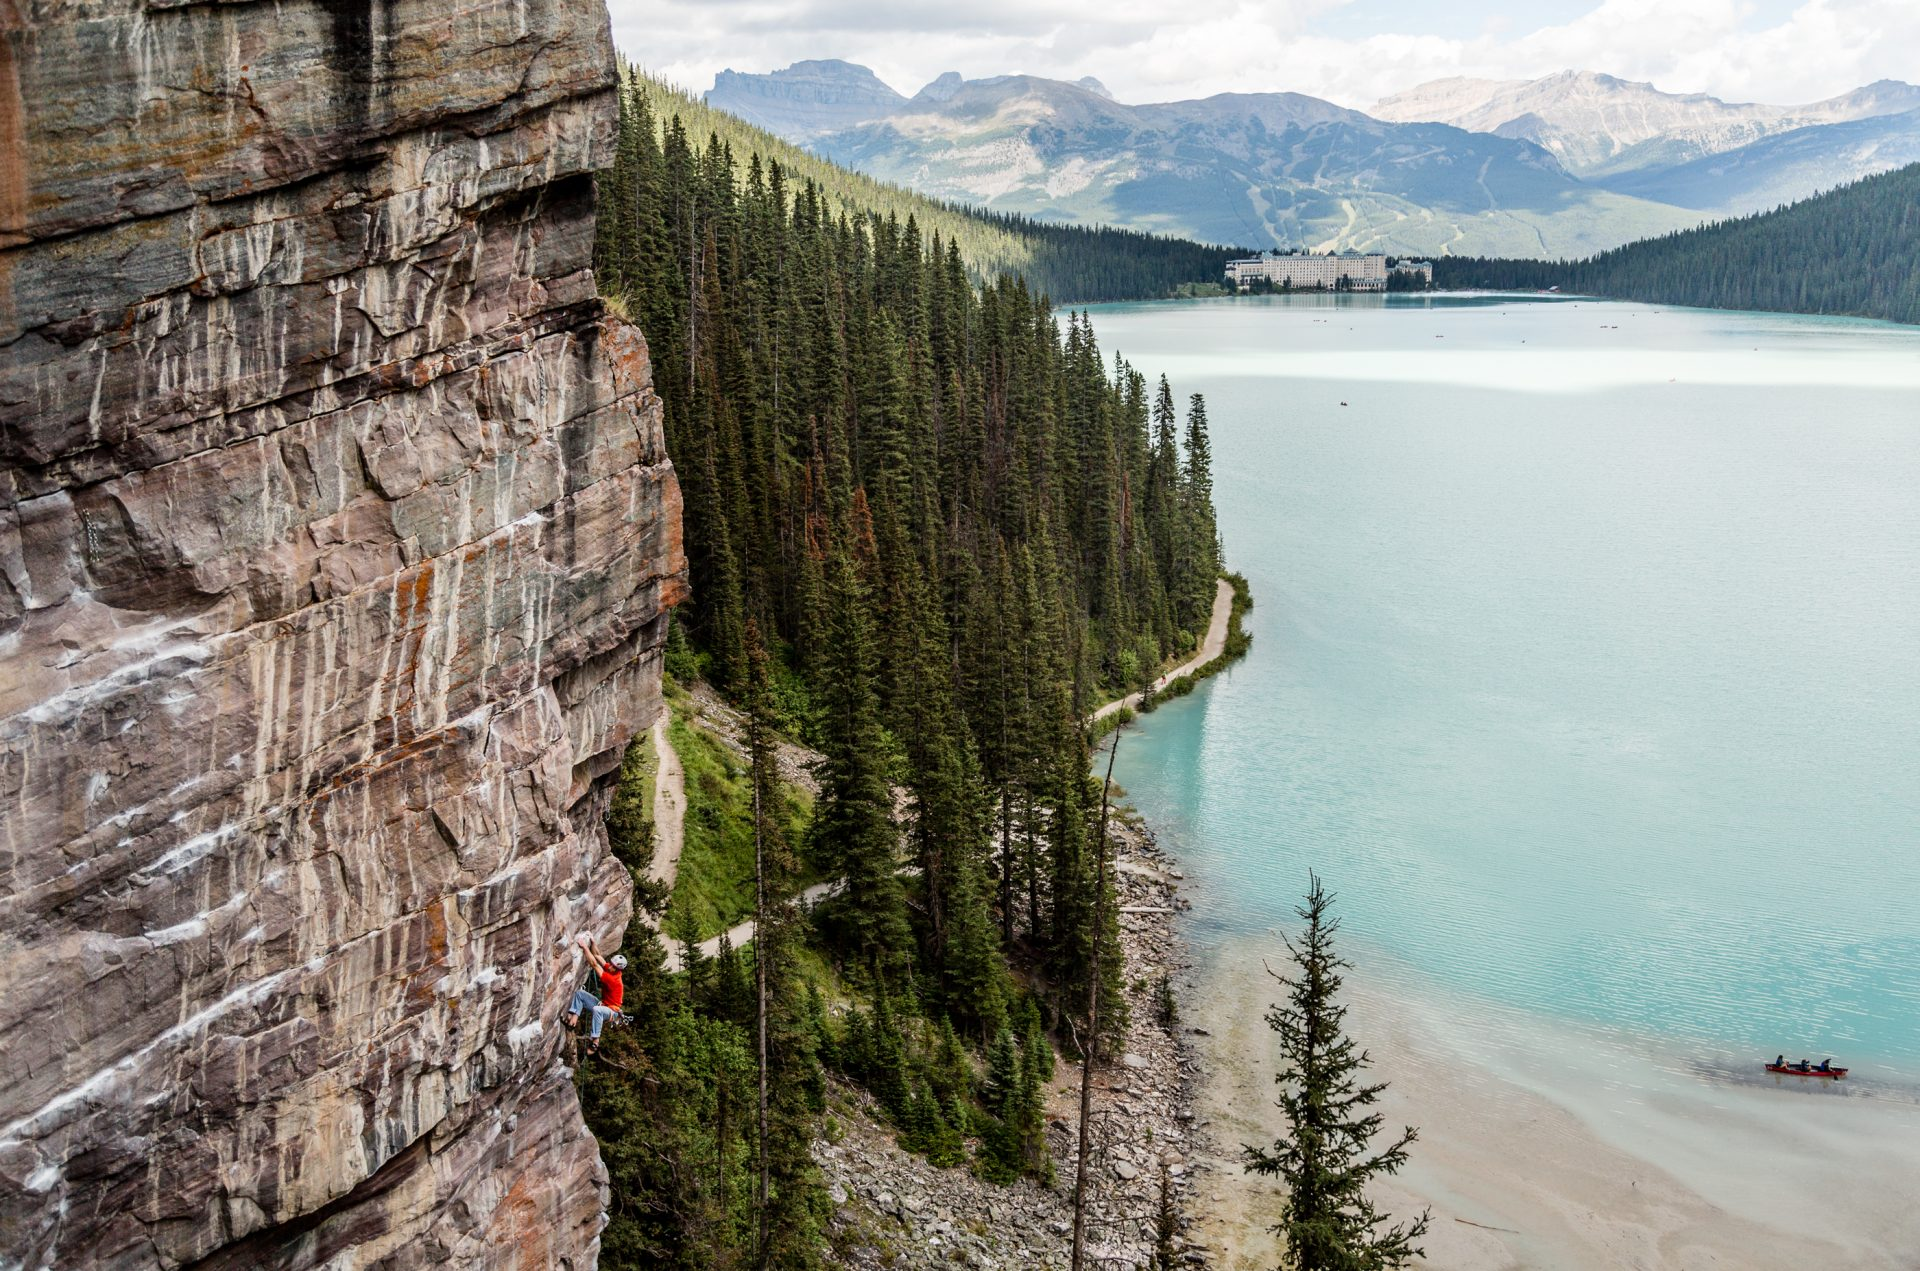 A man climbing a rock wall over a lake and forest trees.